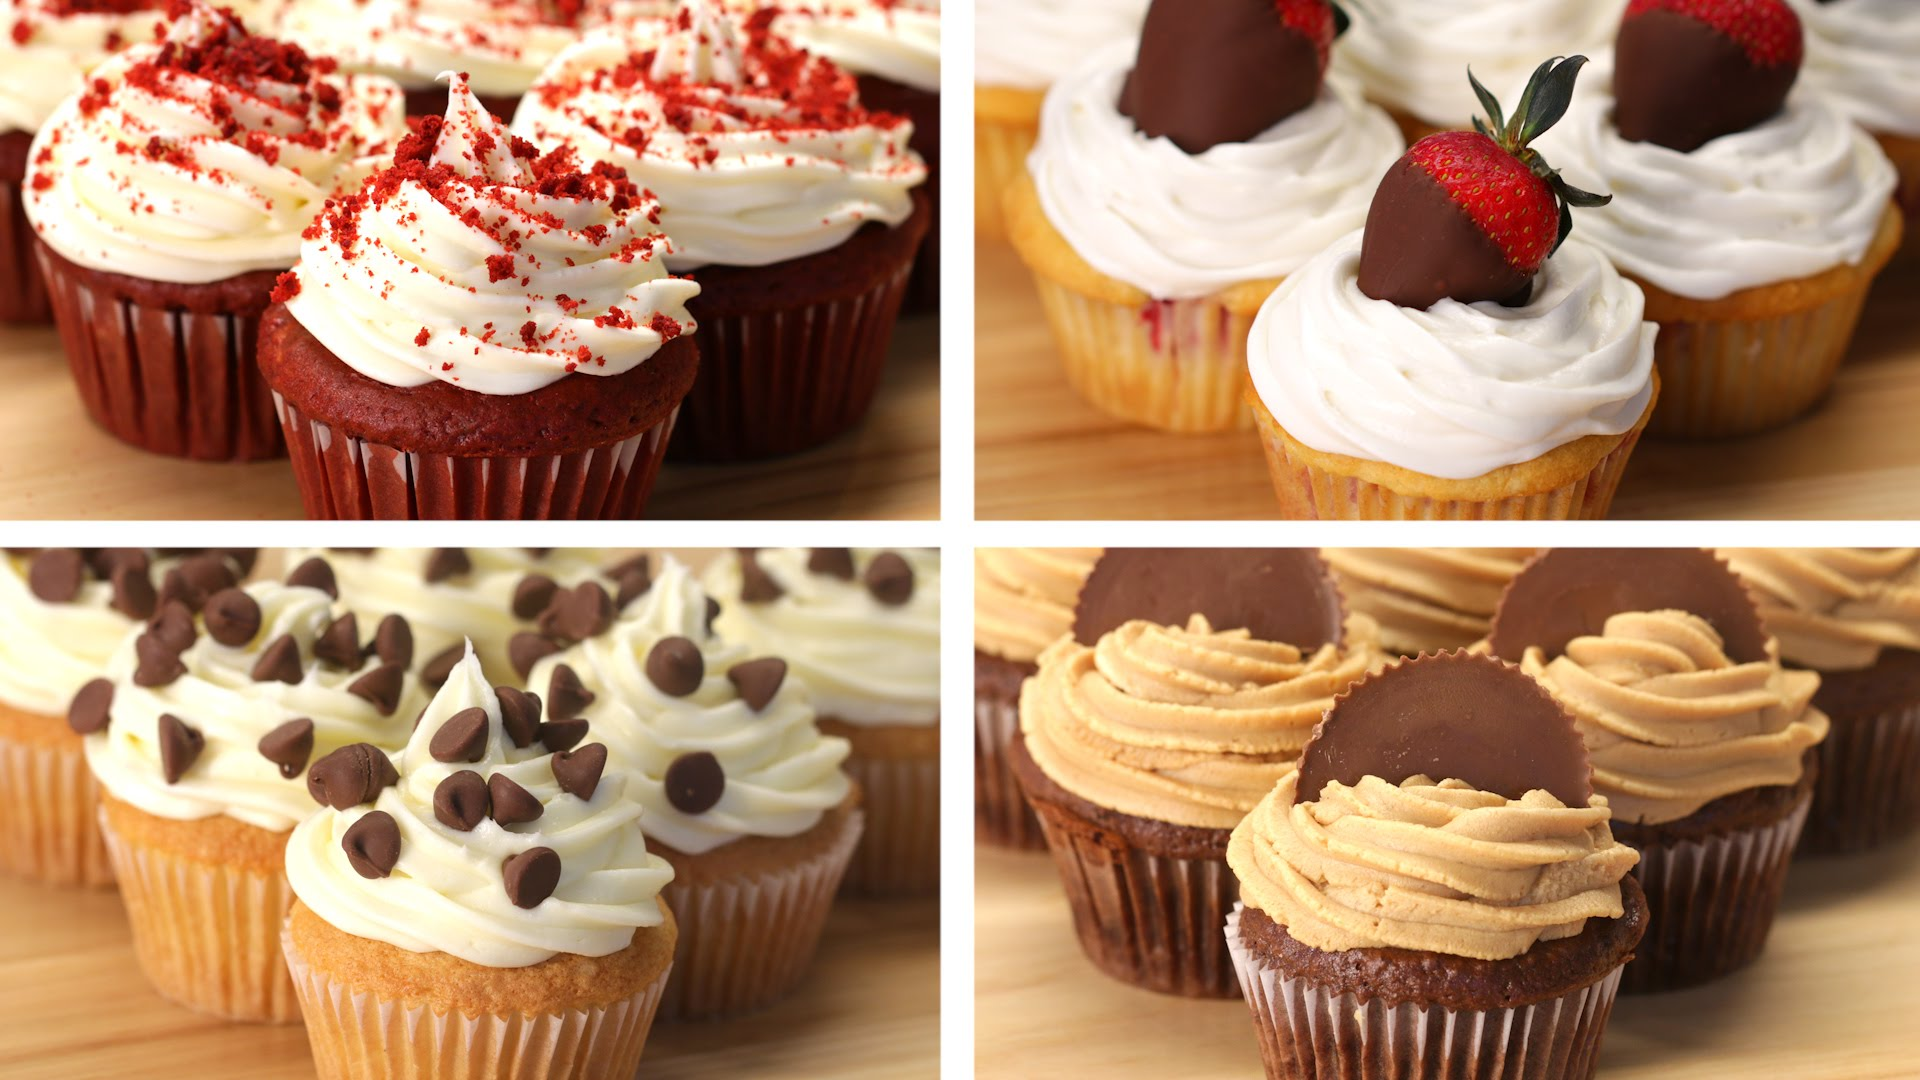 What Amazing Cupcakes 4 Different Ways